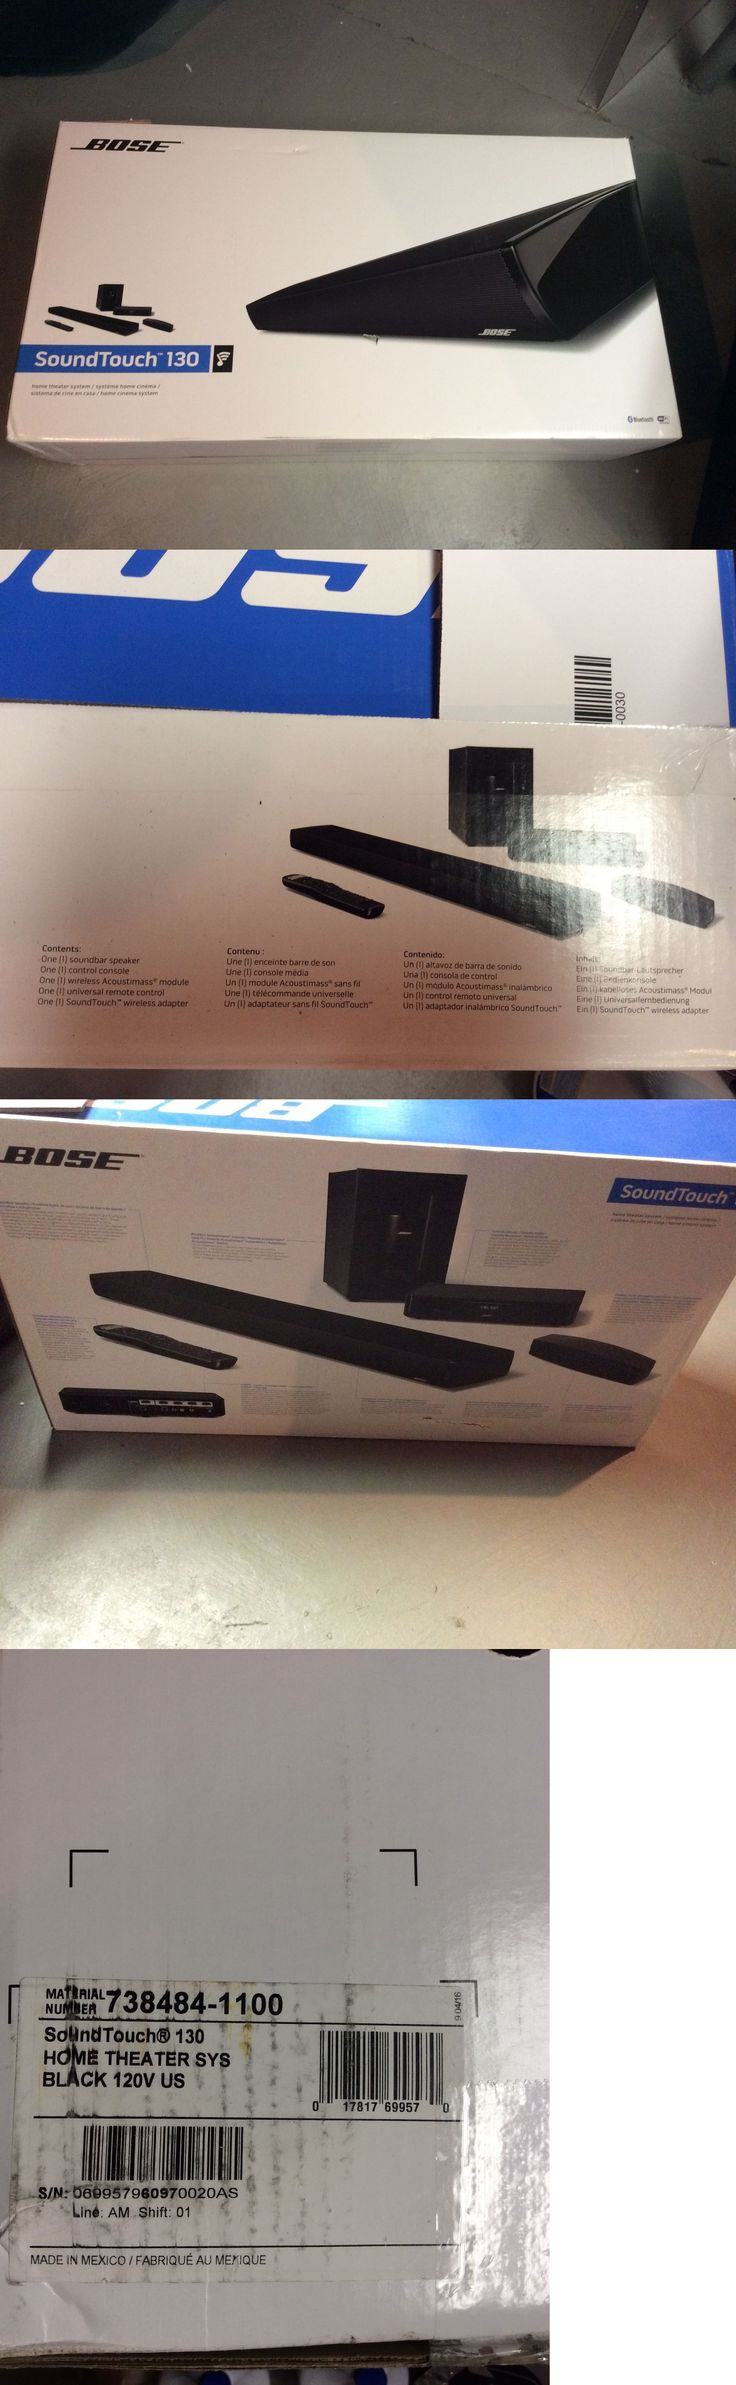 Home Theater Systems: Bose Soundtouch 130 Home Entertainment System - Black Nib -> BUY IT NOW ONLY: $900 on eBay!